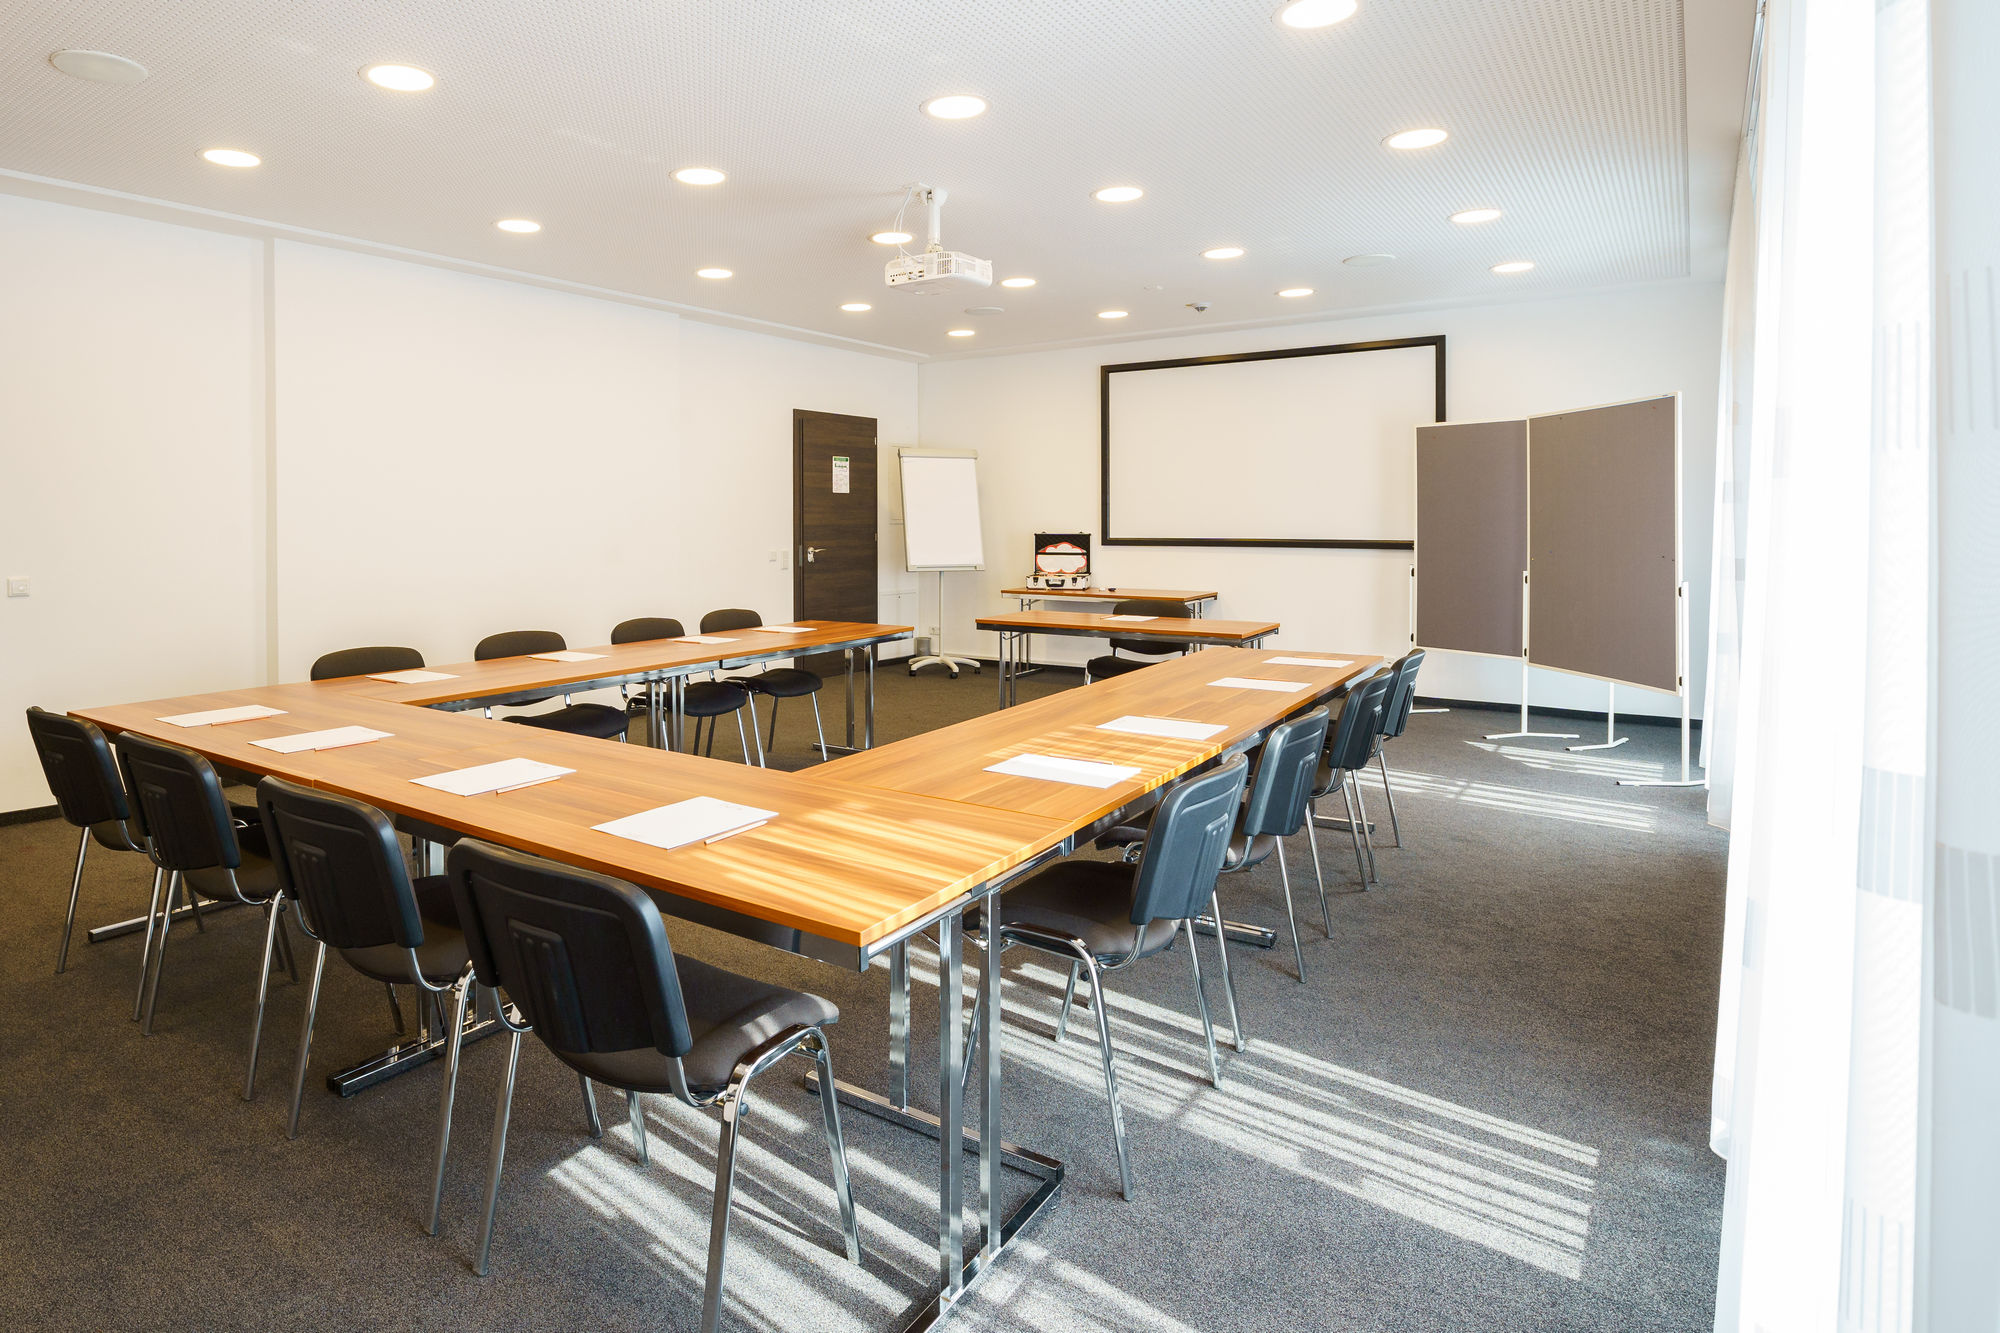 Hotel-DuDa - Meeting room